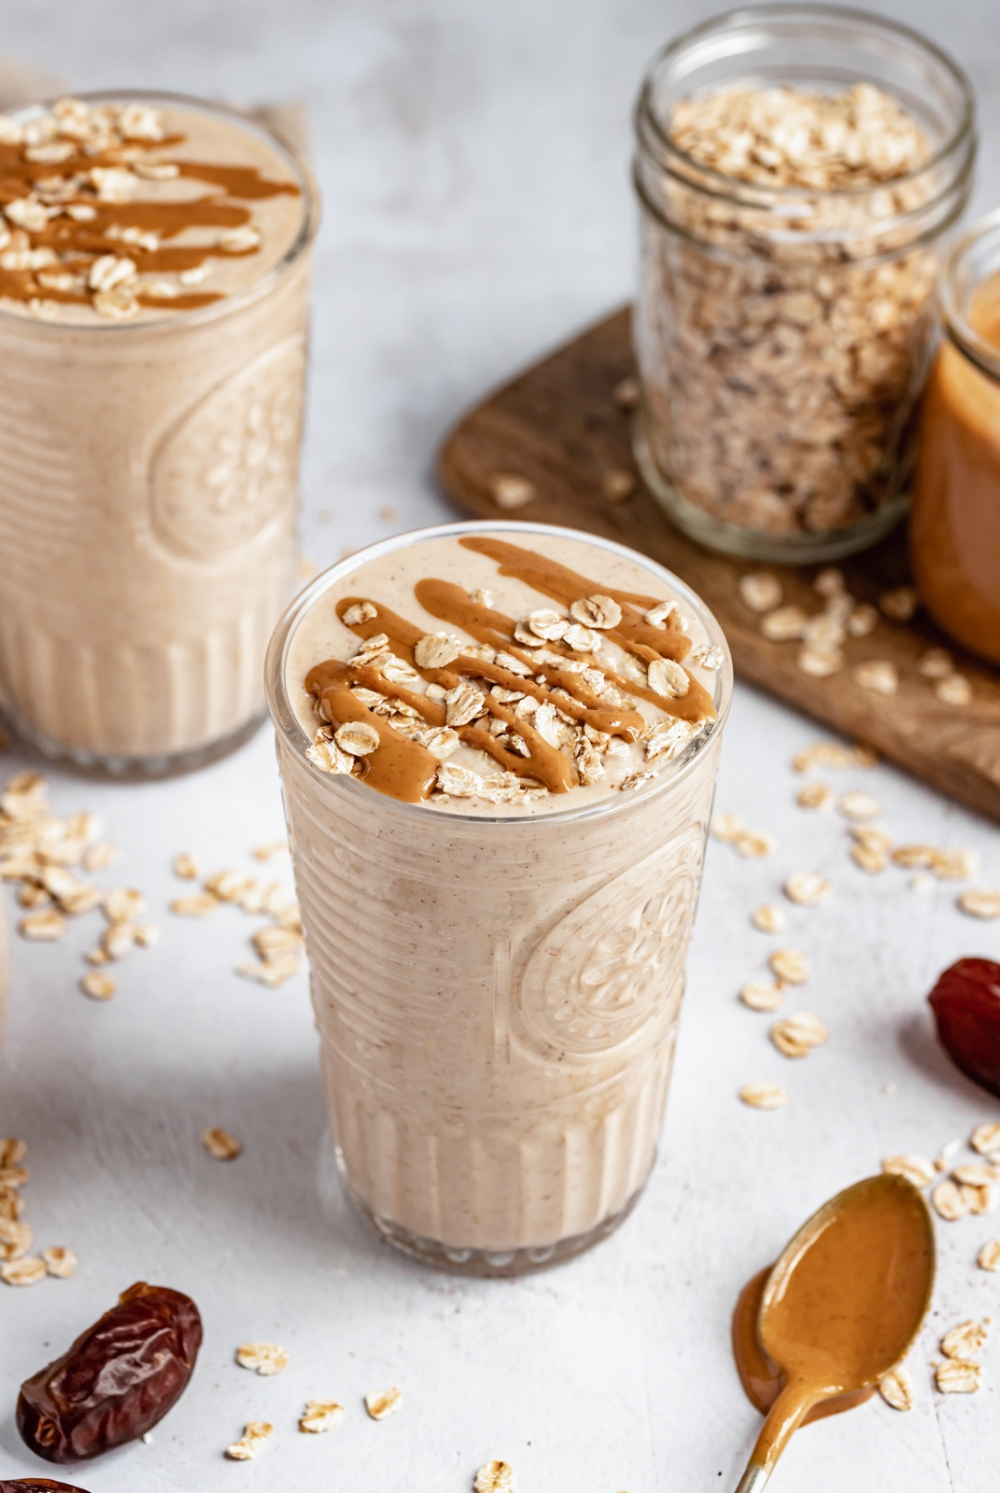 Deliciously Creamy Peanut Butter Oatmeal Cookie Shake Made With No Banana In Just 10 In 2020 Peanut Butter Oatmeal Peanut Butter Oatmeal Cookies Healthy Peanut Butter